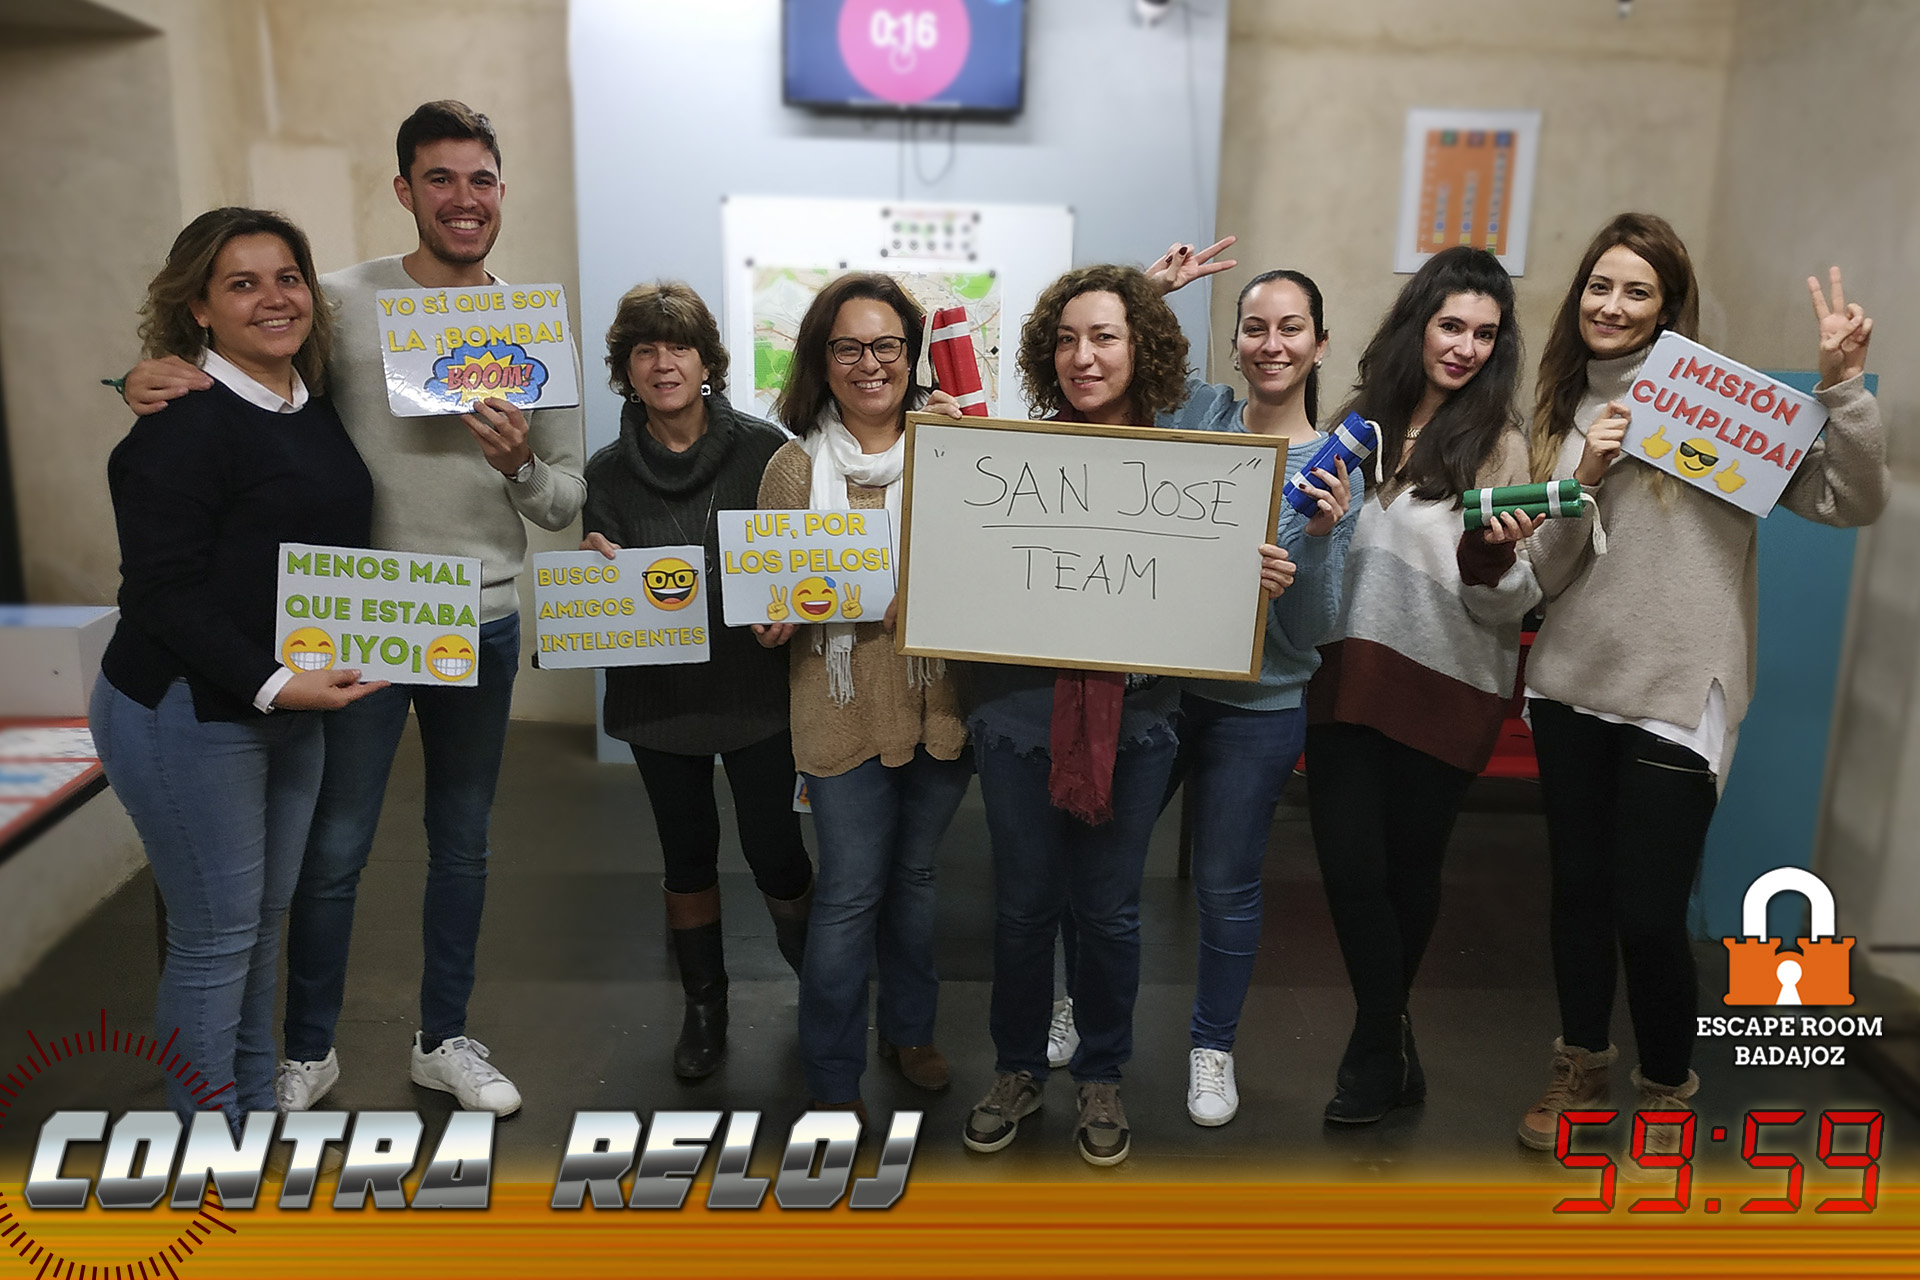 San-José-Team-Escape-room-badajoz